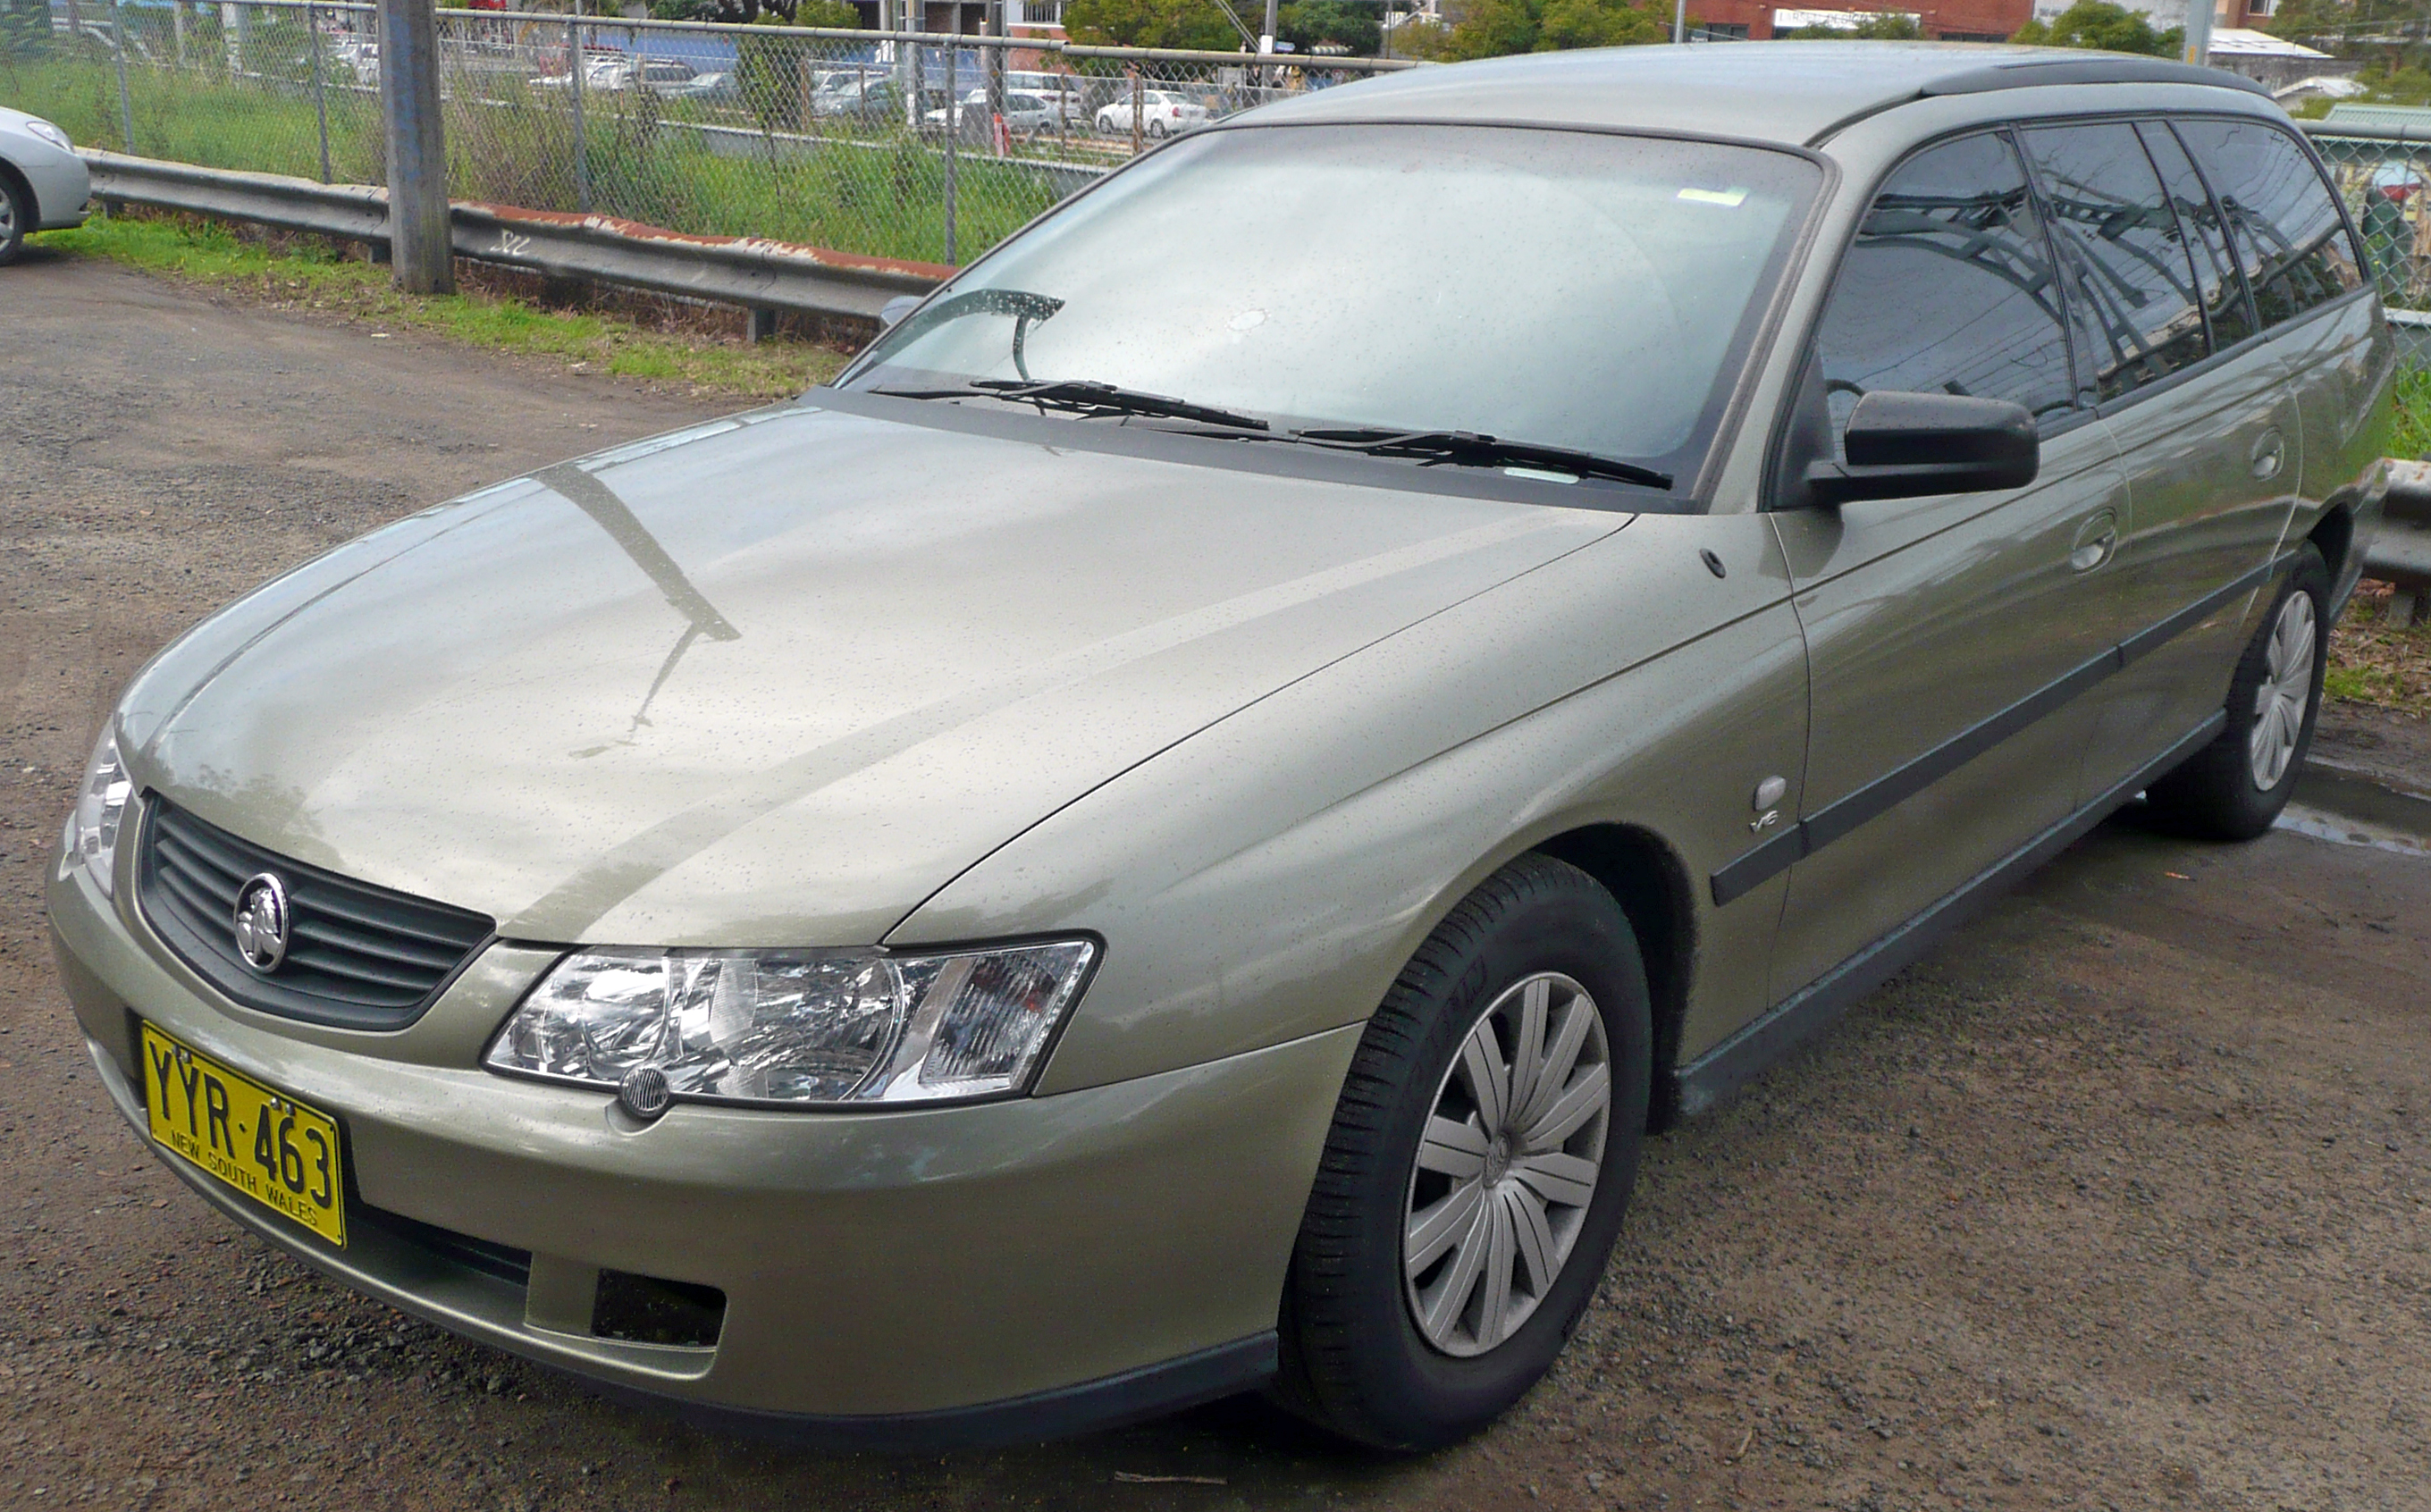 holden caprice (vh) 1998 images #4